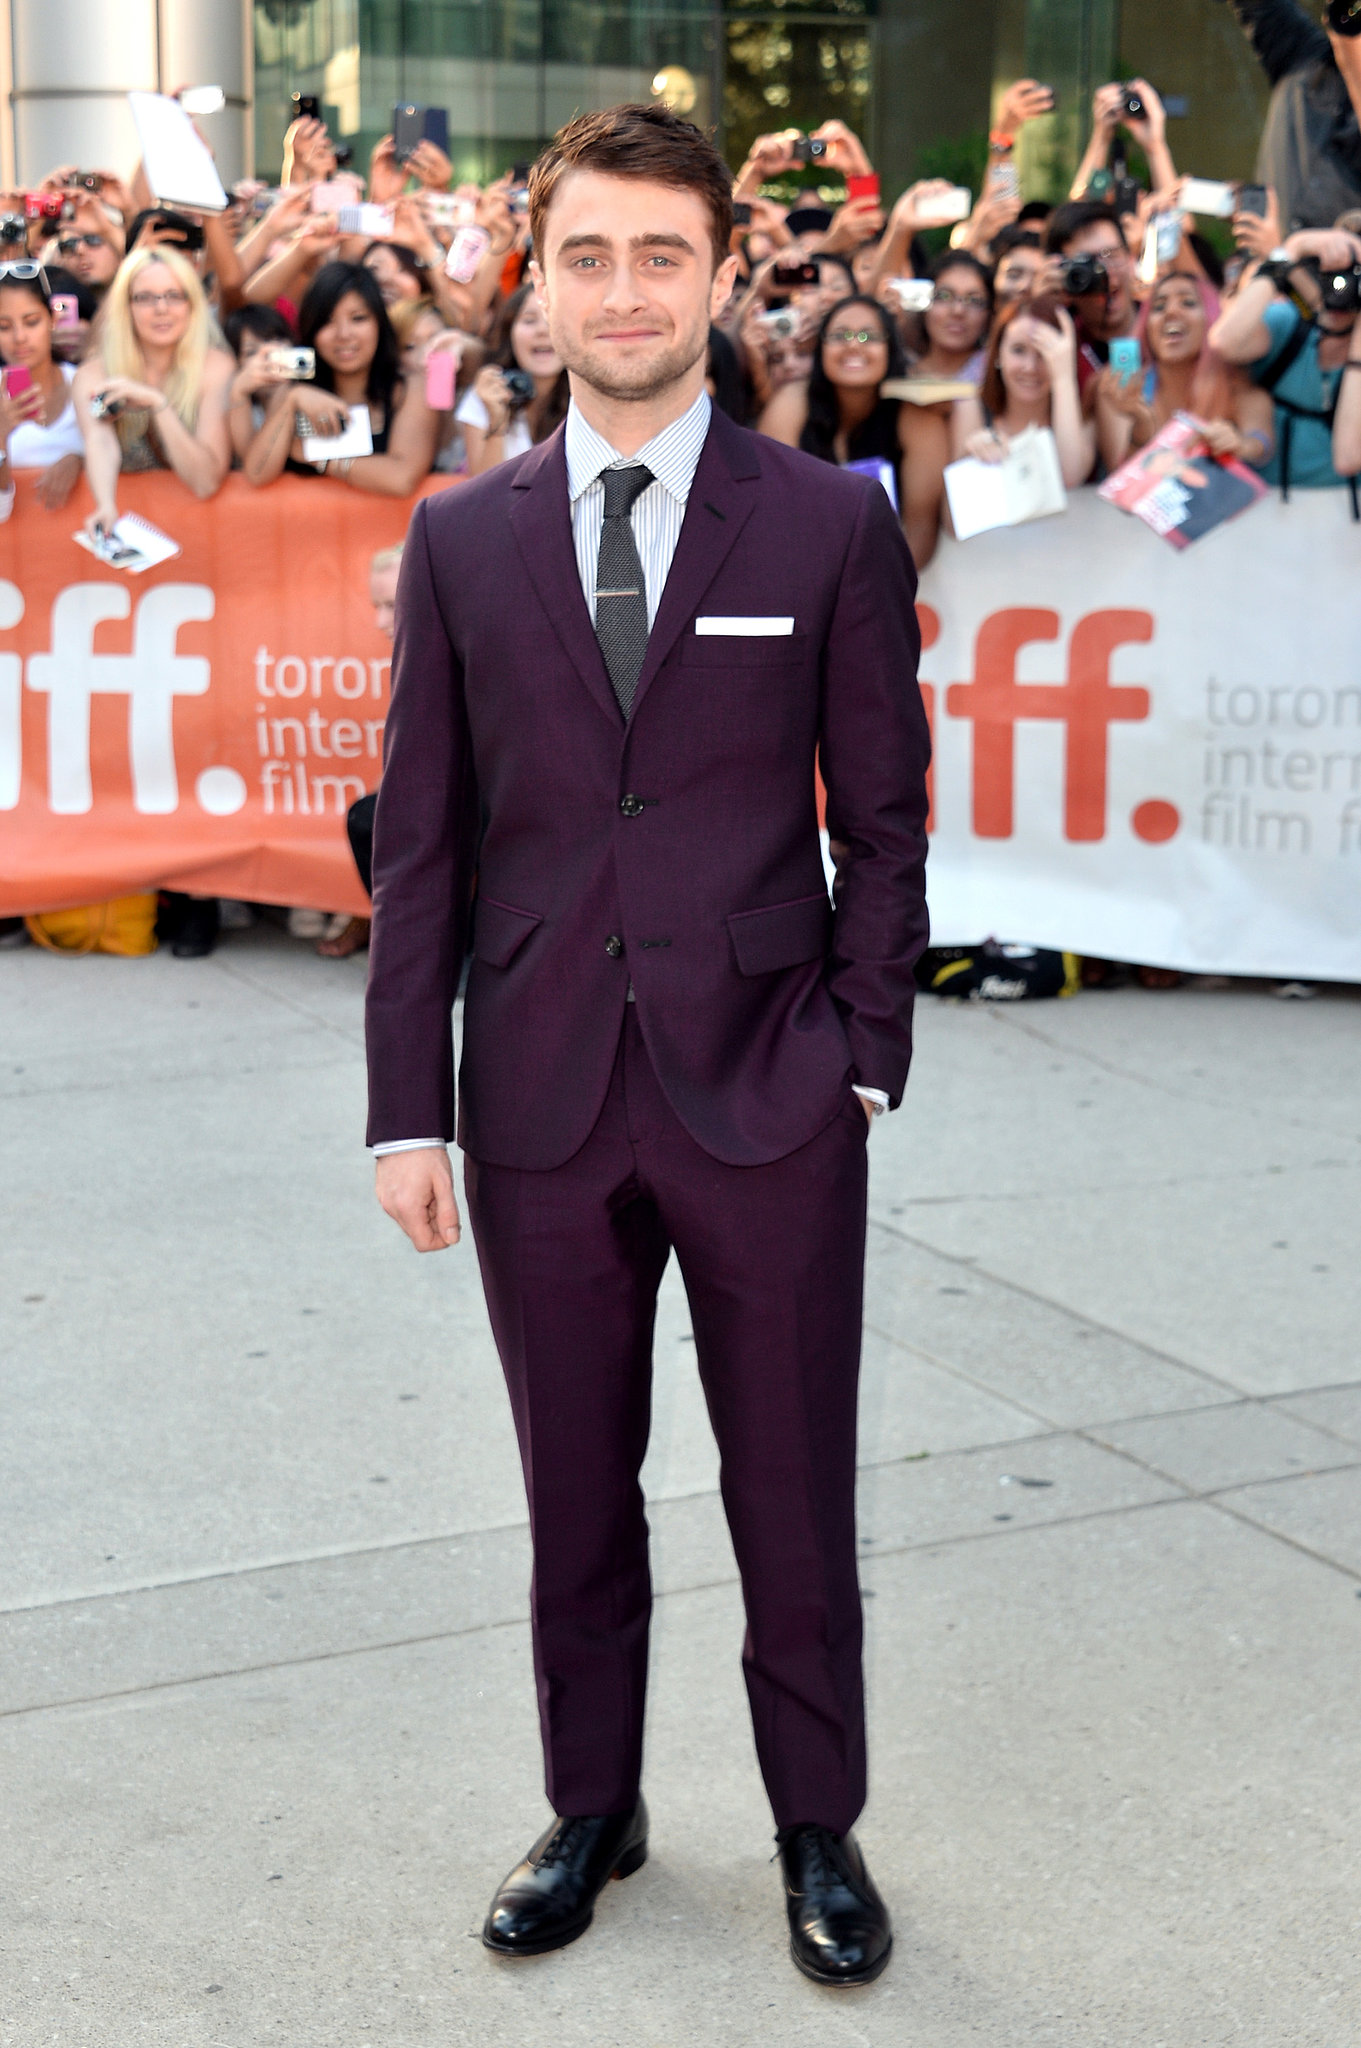 Daniel Radcliffe looked dapper in a maroon suit for the Kill Your Darlings premiere at TIFF.